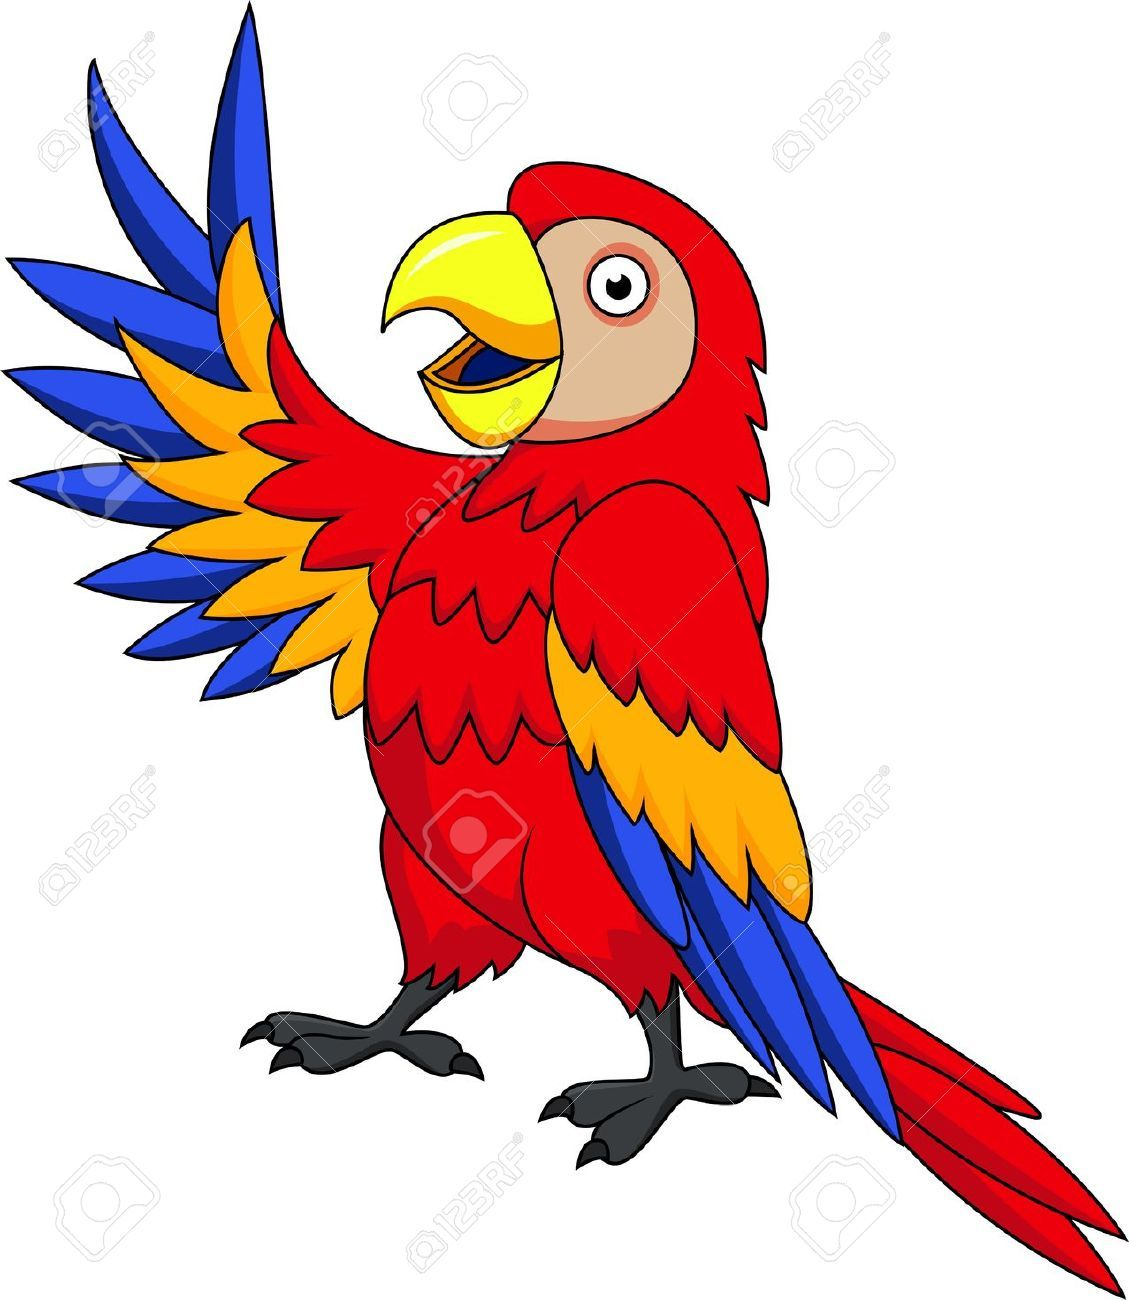 parrot clipart google search animals pinterest rh pinterest com parrot clip art free parrot clipart black and white